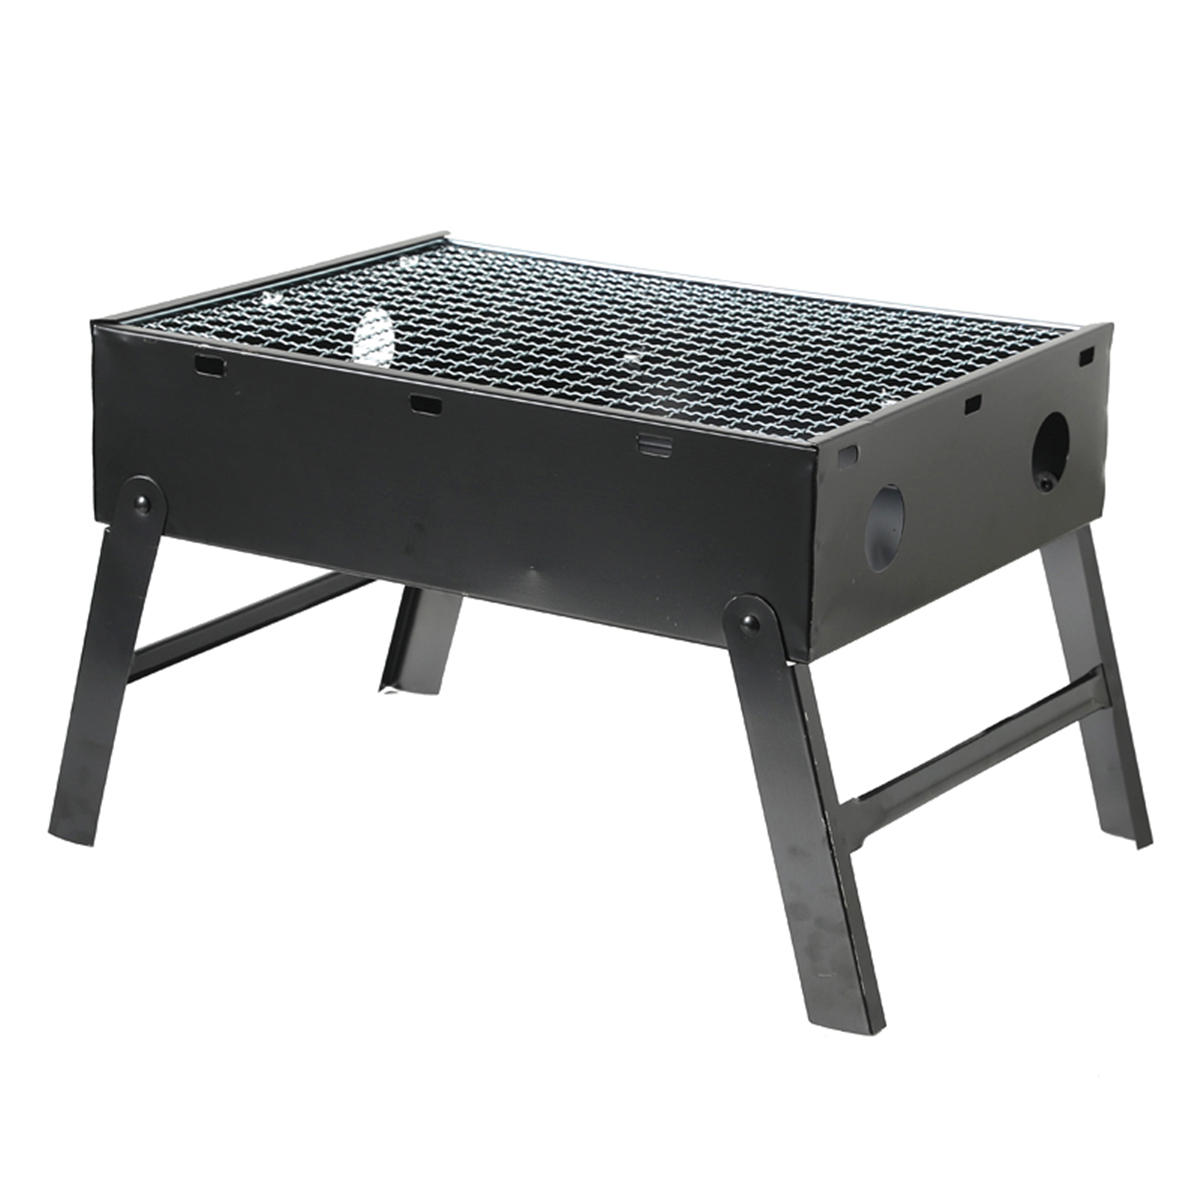 3-4 People Outdoor Portable Foldable Charcoal BBQ Grill Hibachi Barbecue Folding Cooking Stove Camping Picnic